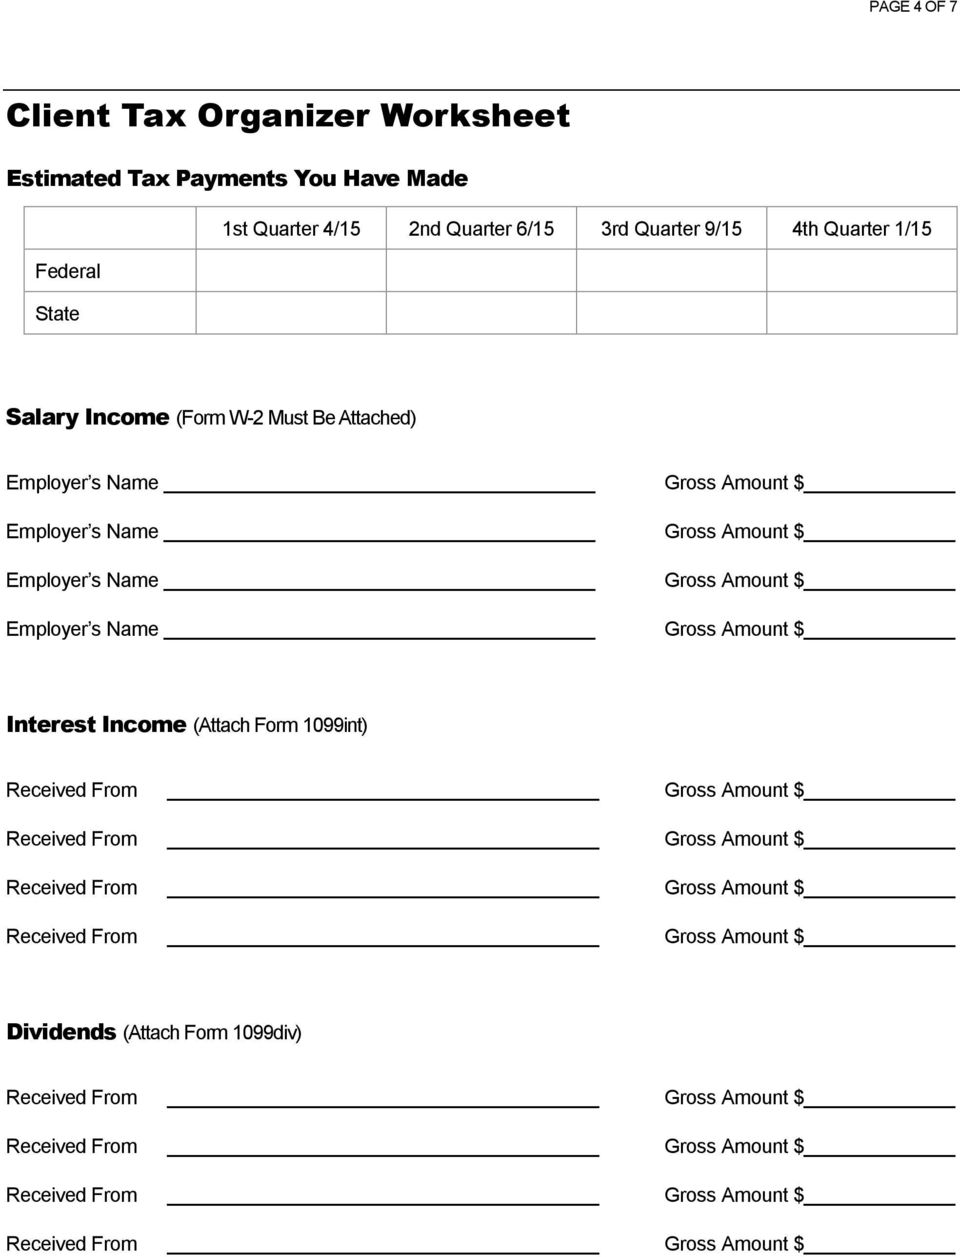 Client Tax Organizer Worksheet - PDF